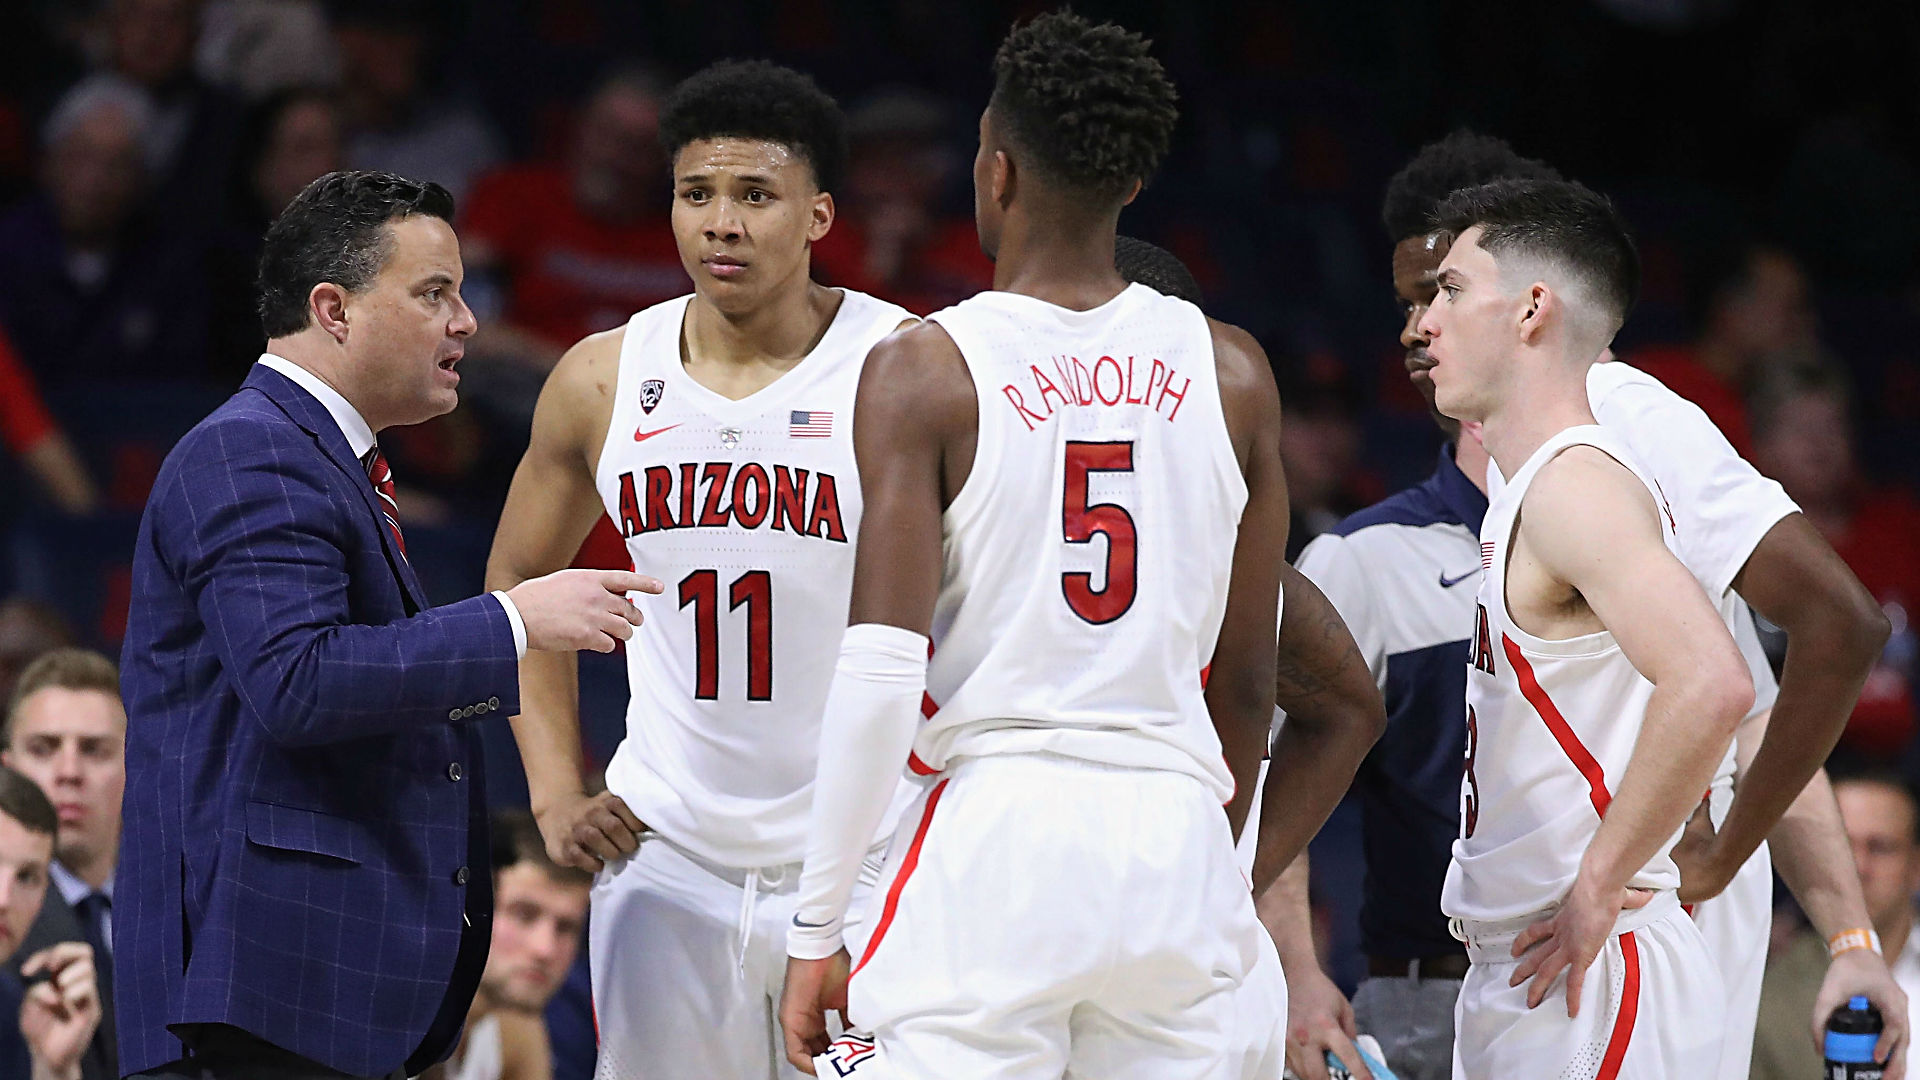 Arizona Coach Sean Miller Thanks Fans in Emotional Address